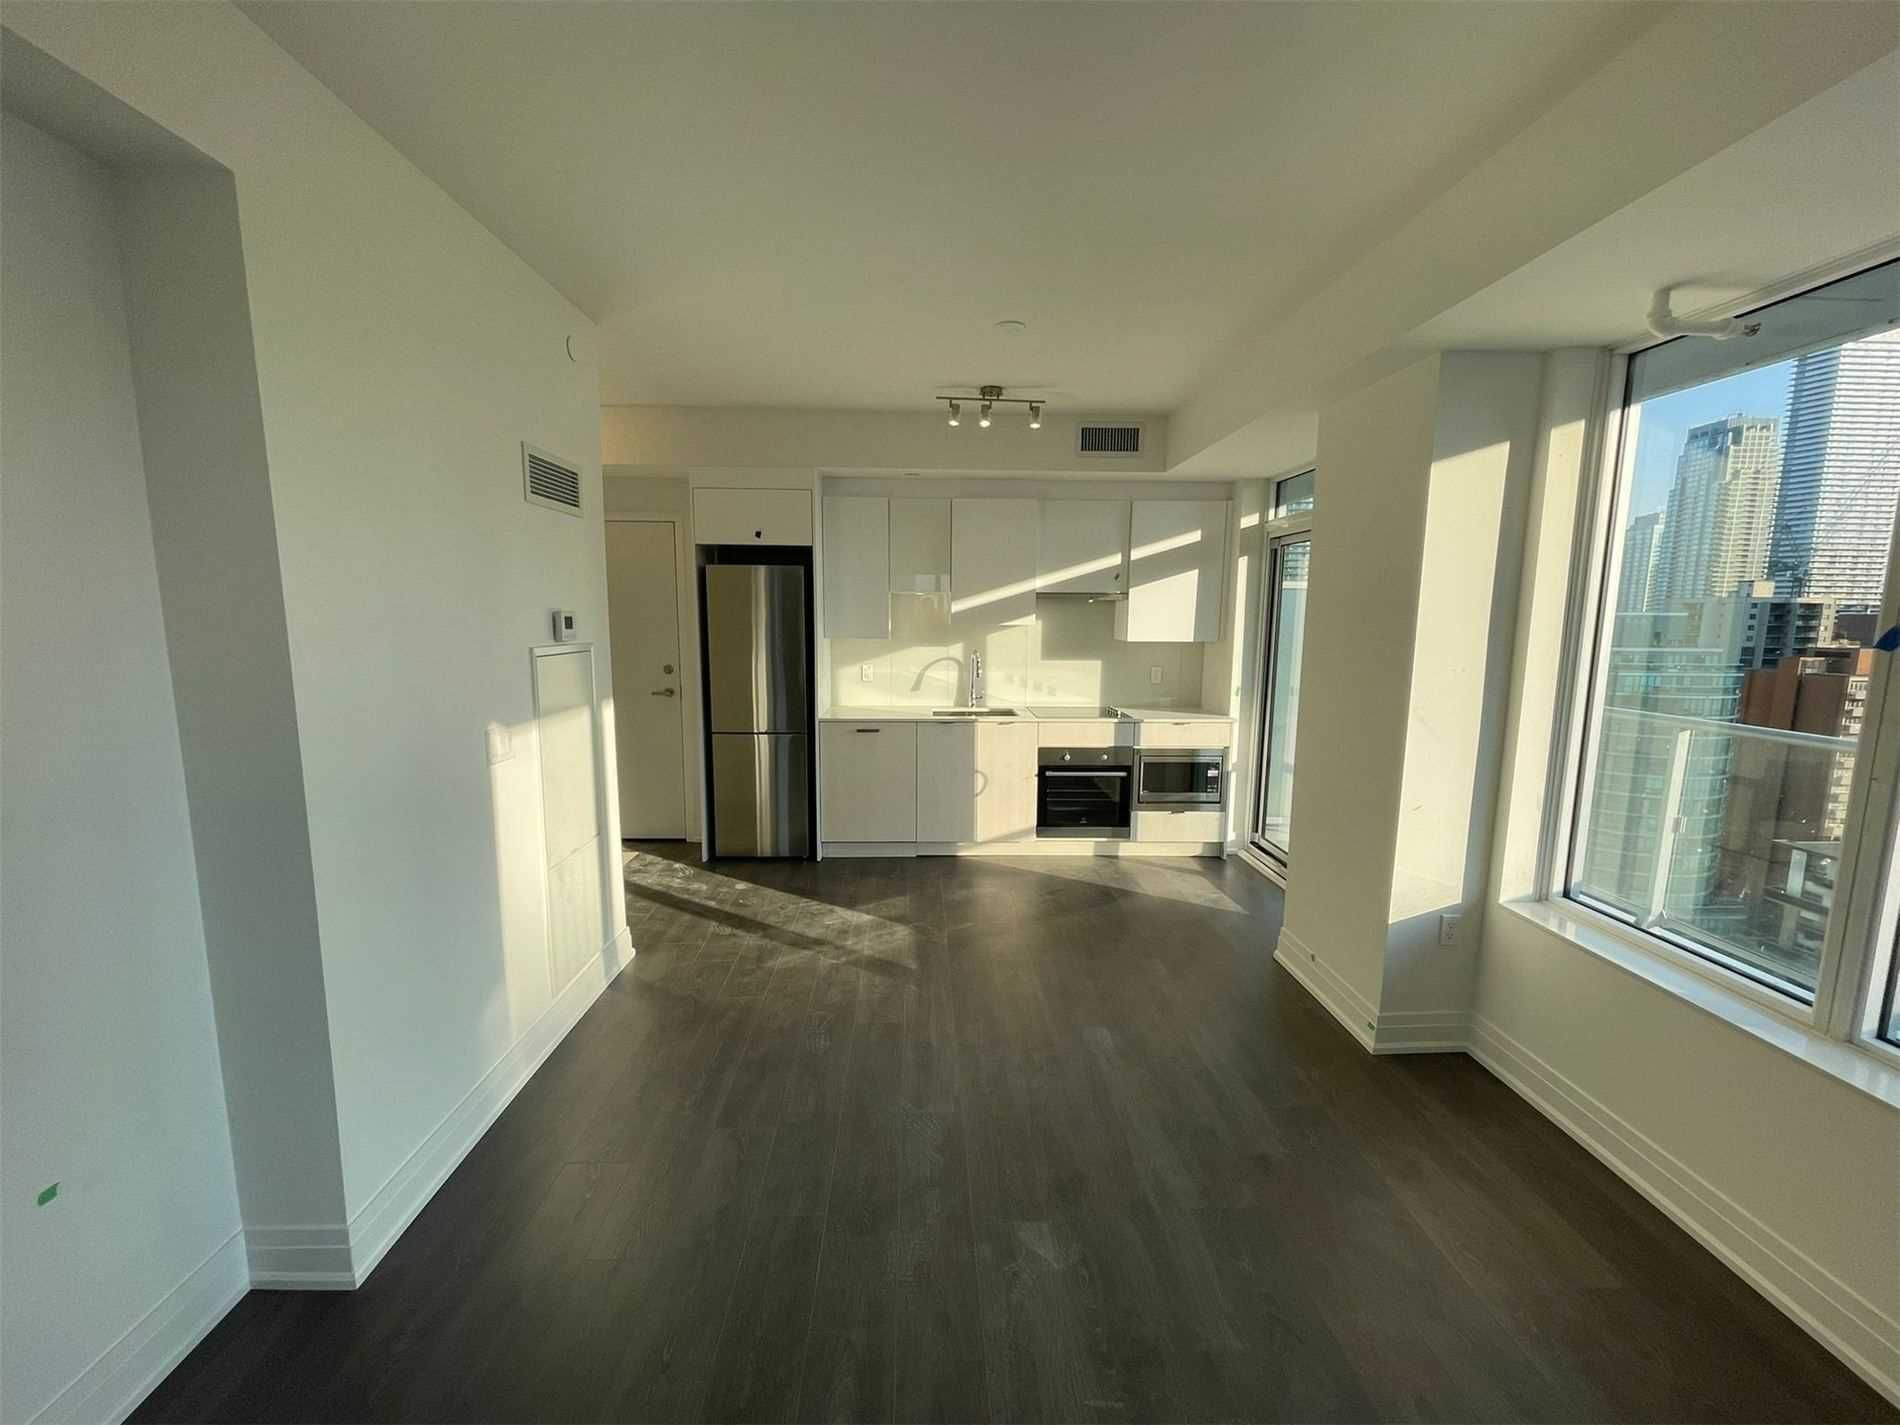 99 Broadway Ave, unit 1810 Nt for rent in Toronto - image #1